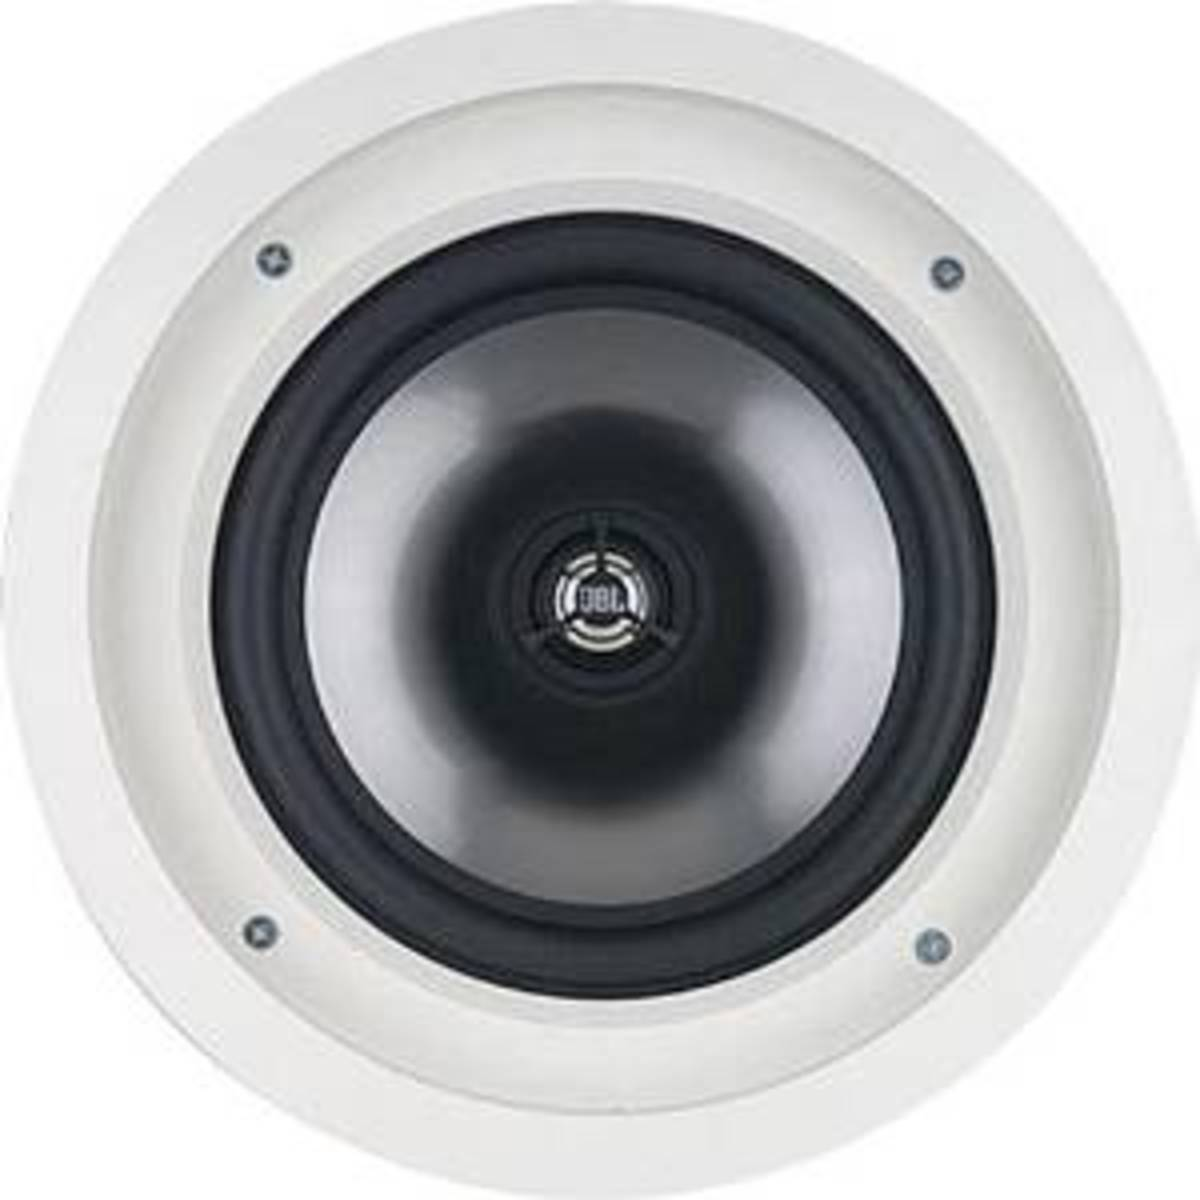 JBL SP8CII in-ceiling speakers, best for bass lovers.